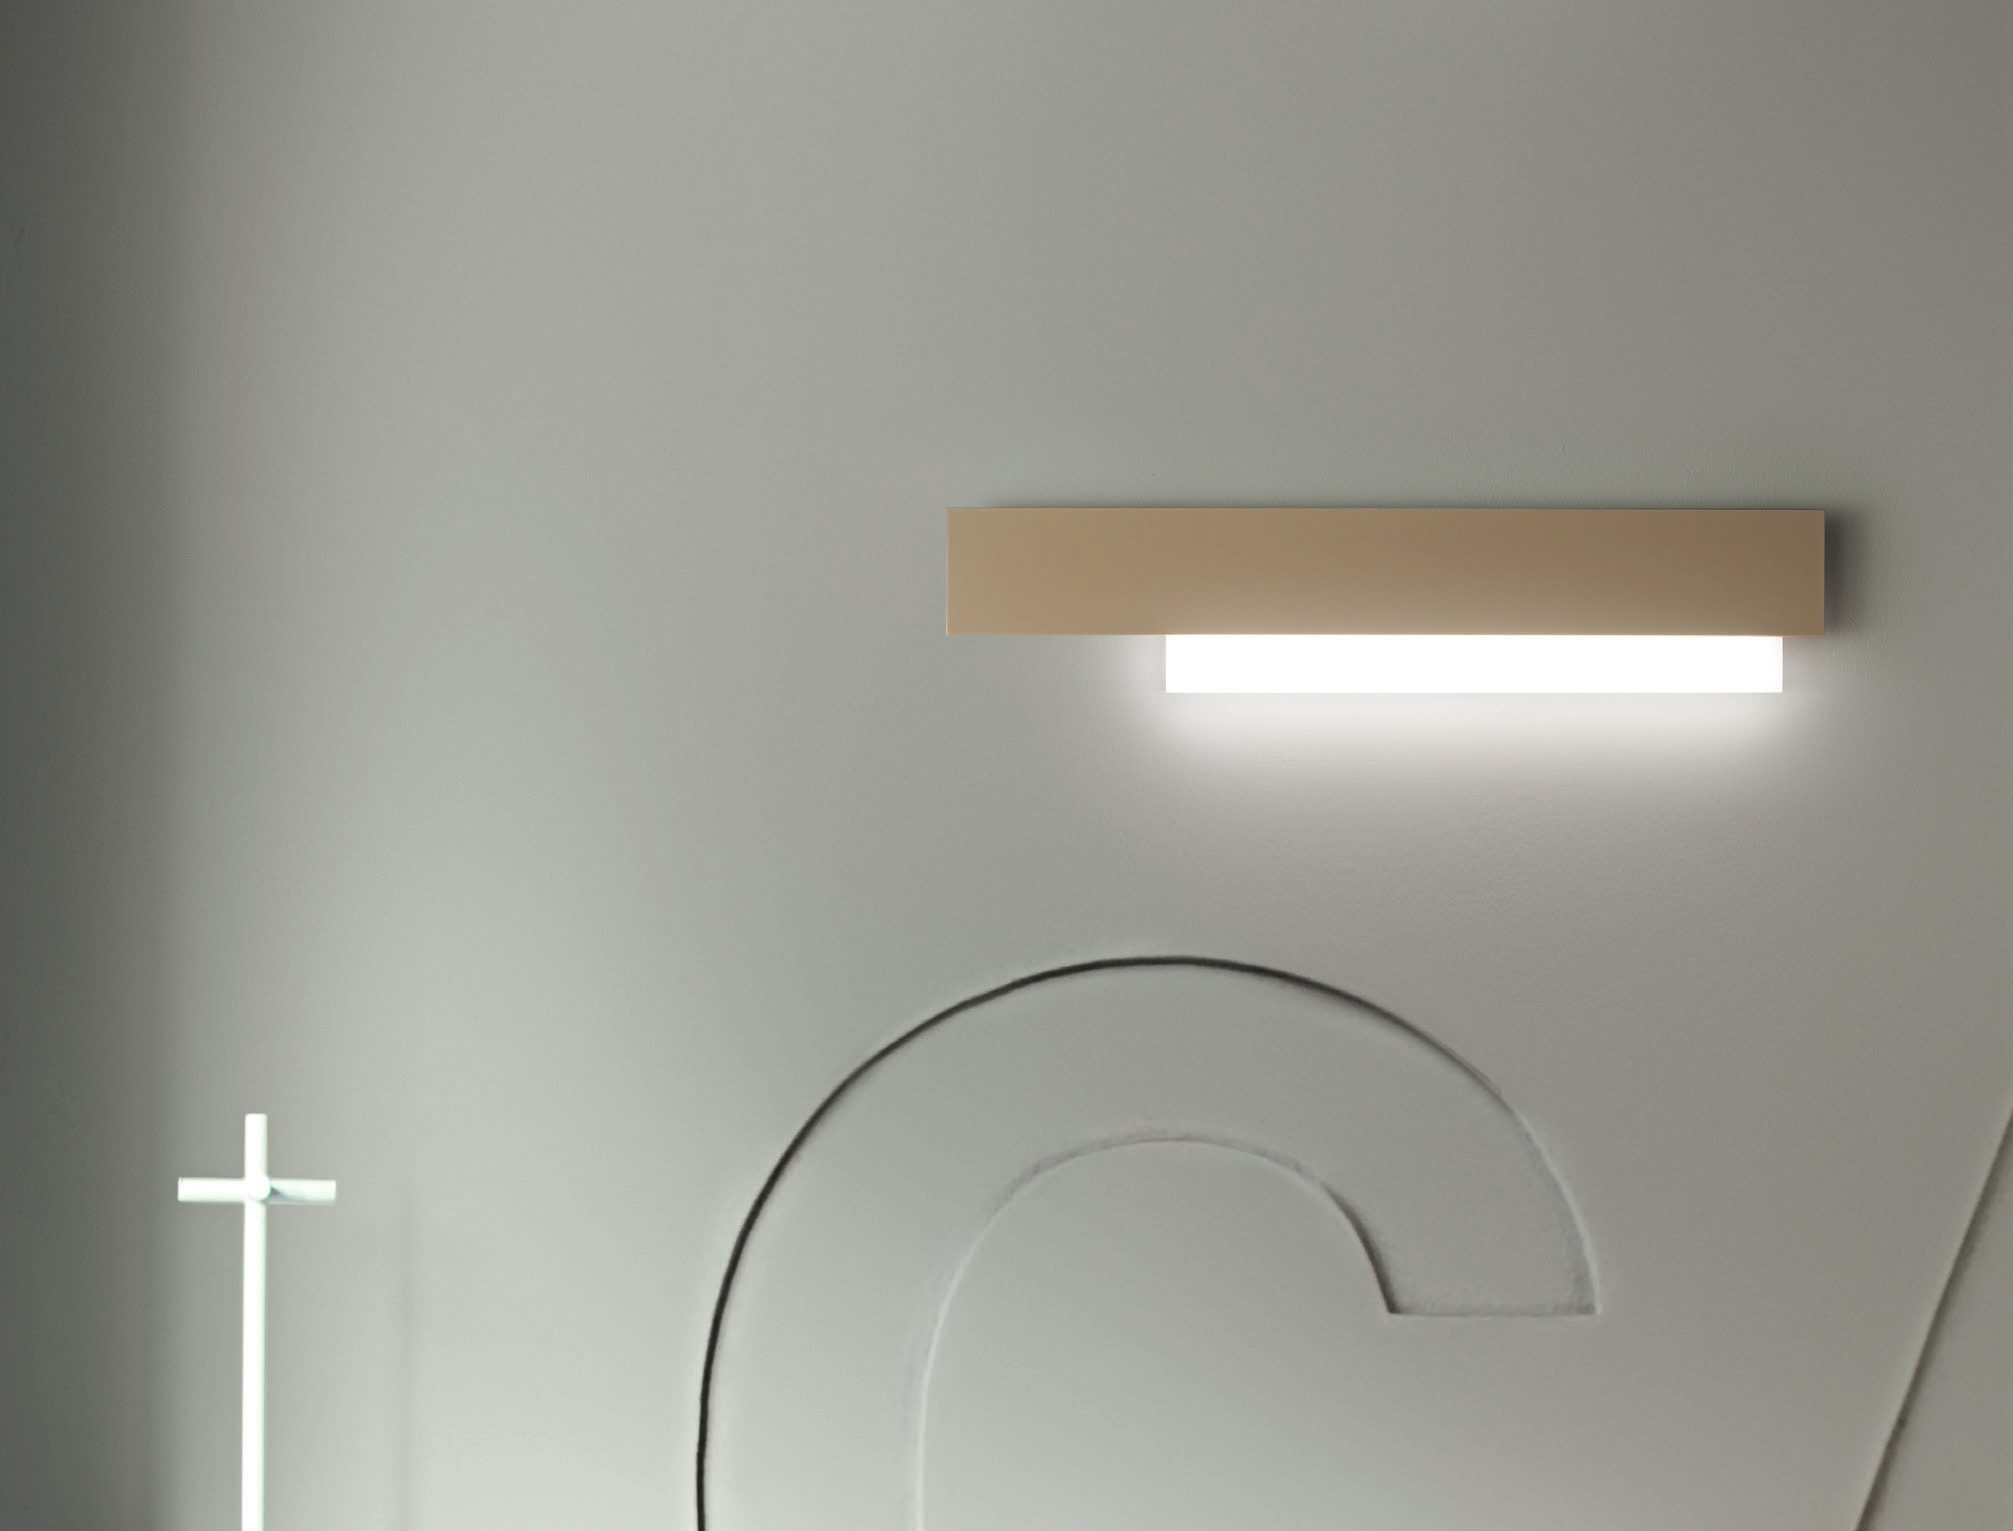 Illuminare casa con applique a led integrato e applique con